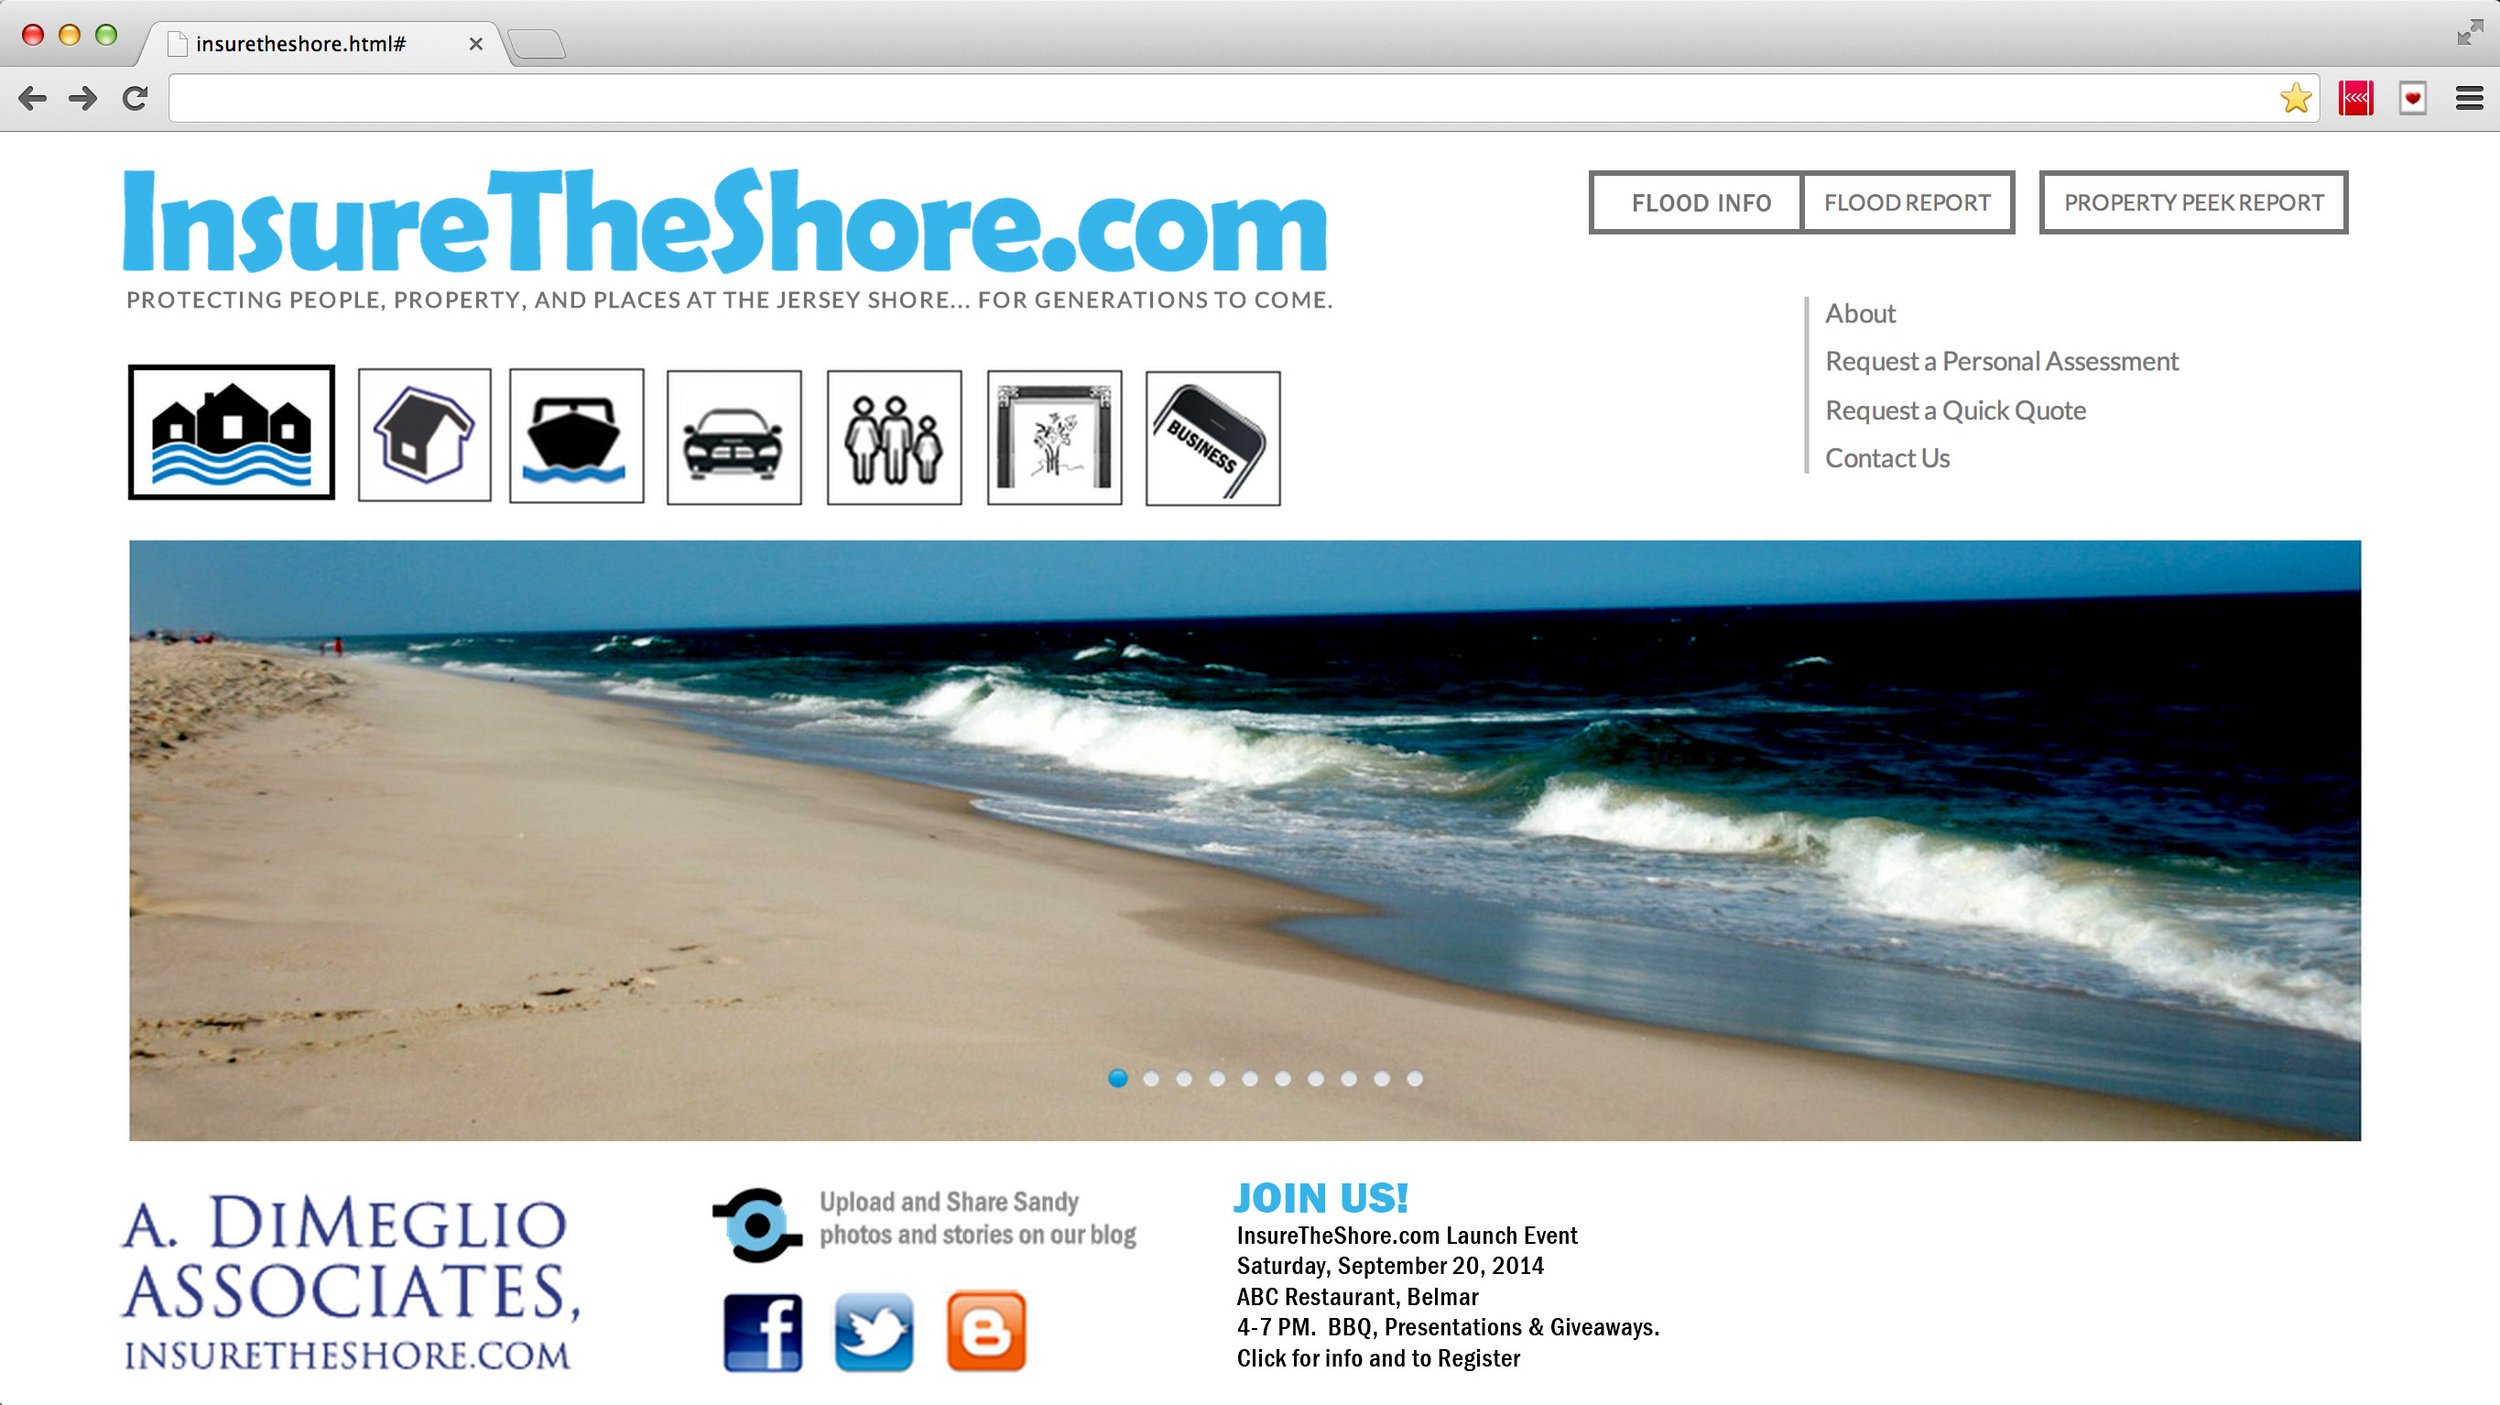 Insure the shore image.jpg